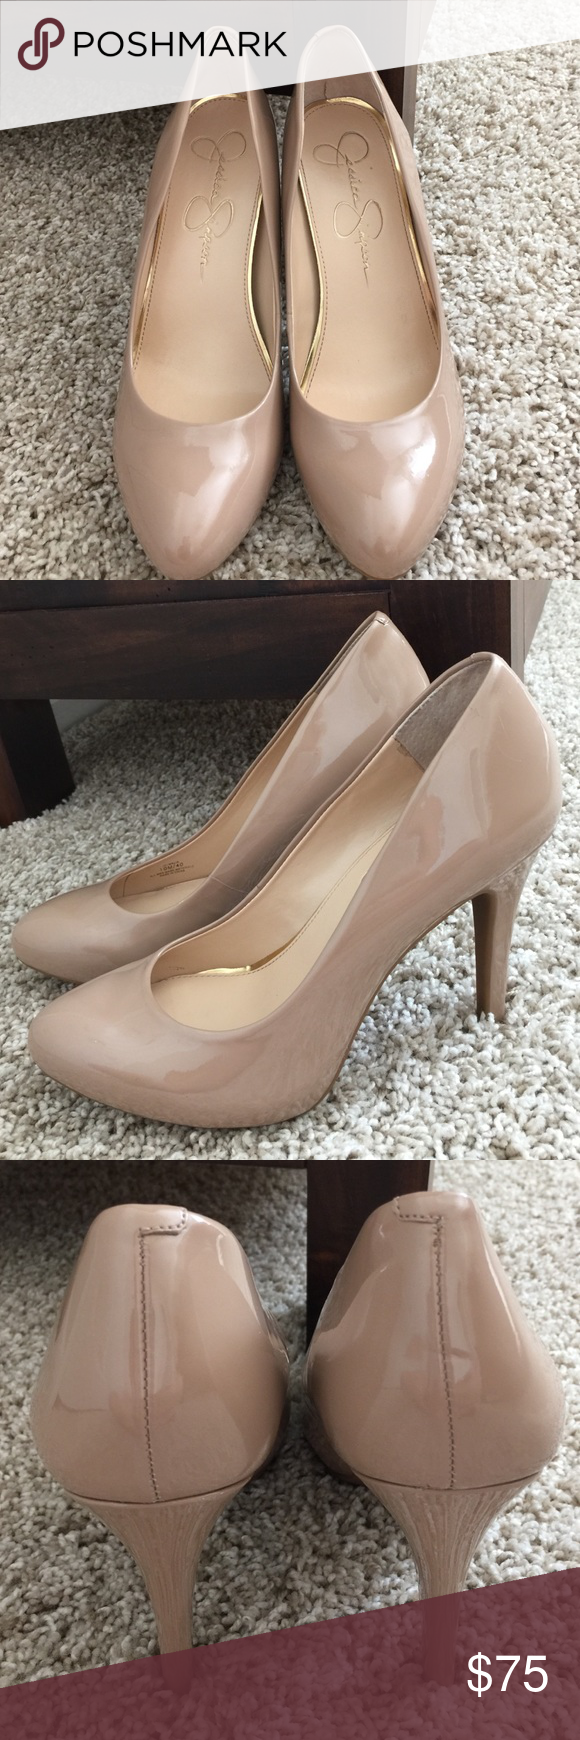 """Jessica Simpson Nude Pumps Jessica Simpson Nude Pumps. Size 10. Worn one time - in excellent condition. There are a couple scratches on the back of the left heel, but you can't see them unless you look for them. 5"""" heel. Jessica Simpson Shoes Heels"""